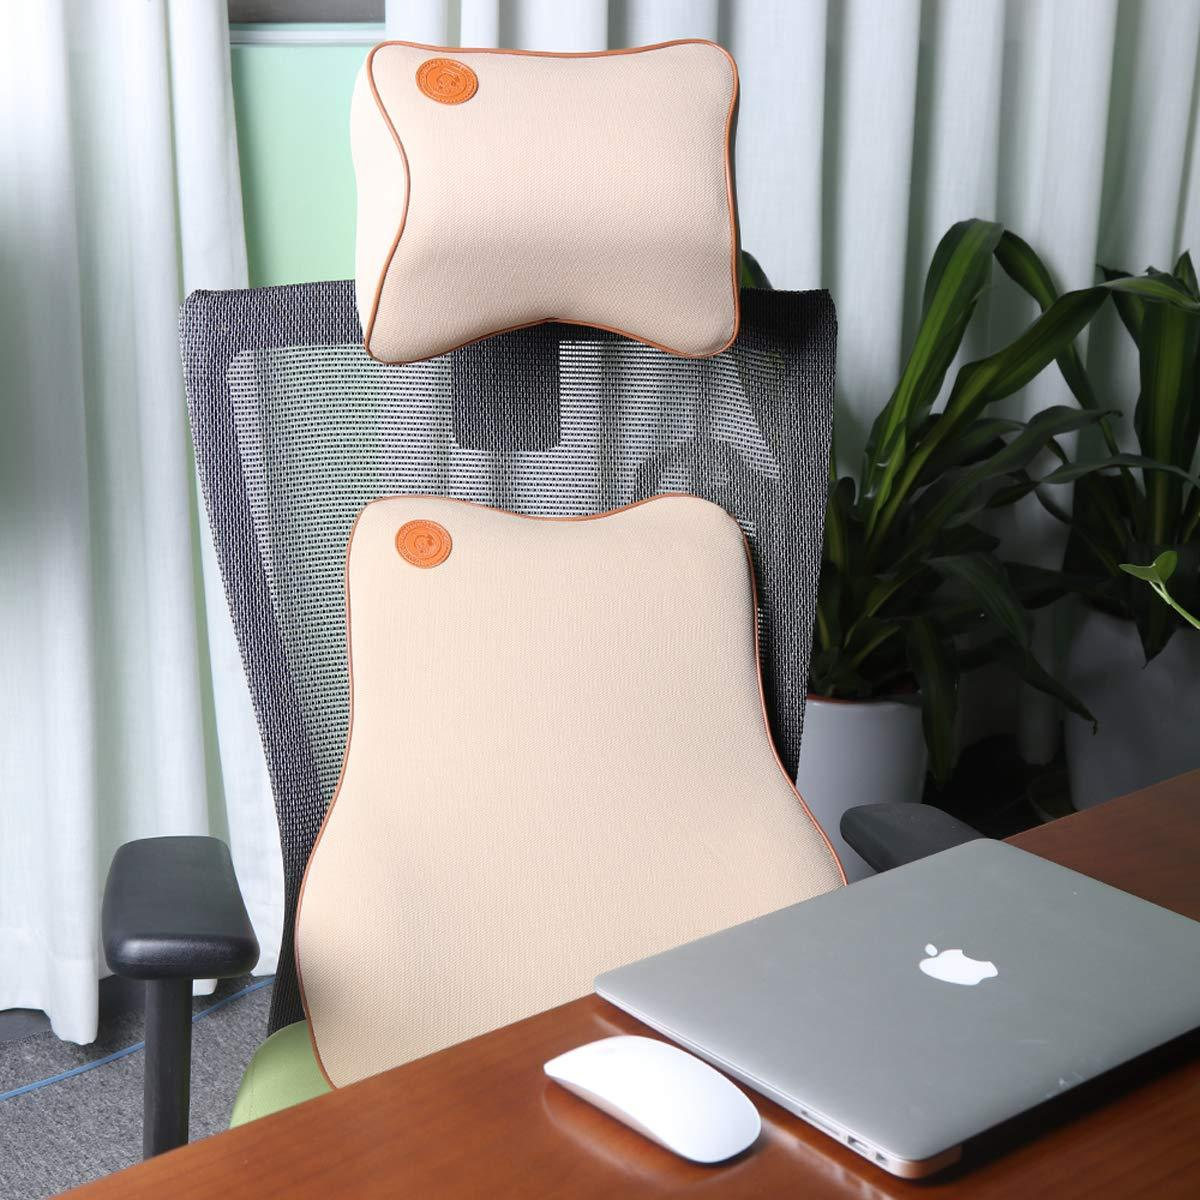 Car Seat Headrest&Lumbar Support Pillow